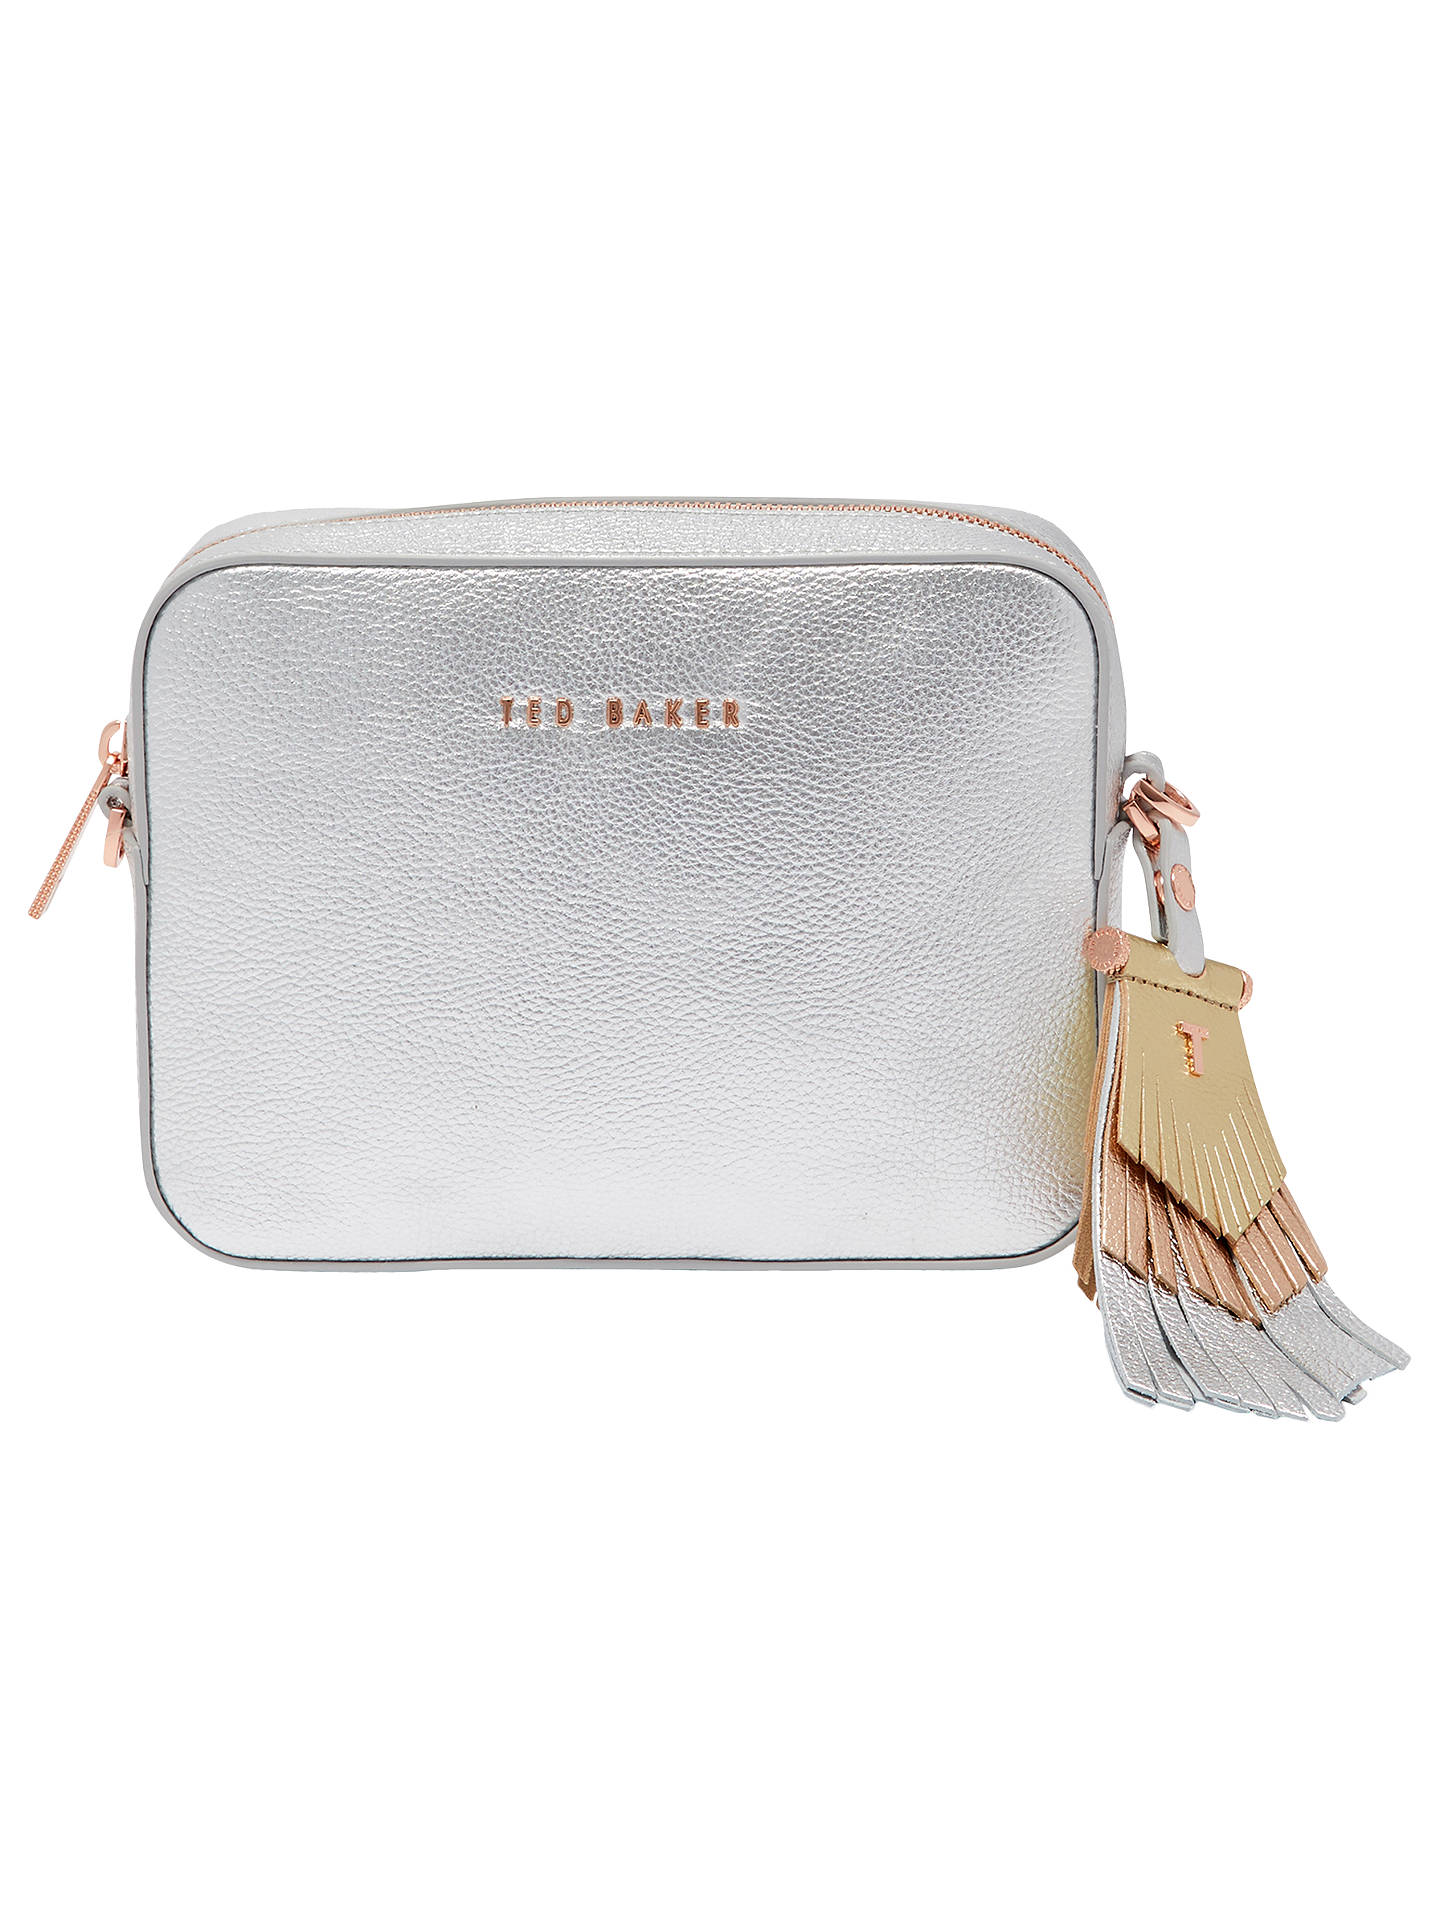 7622c61bd99 Buy Ted Baker Darwina Tassel Trim Leather Camera Cross Body Bag, Silver  Online at johnlewis ...